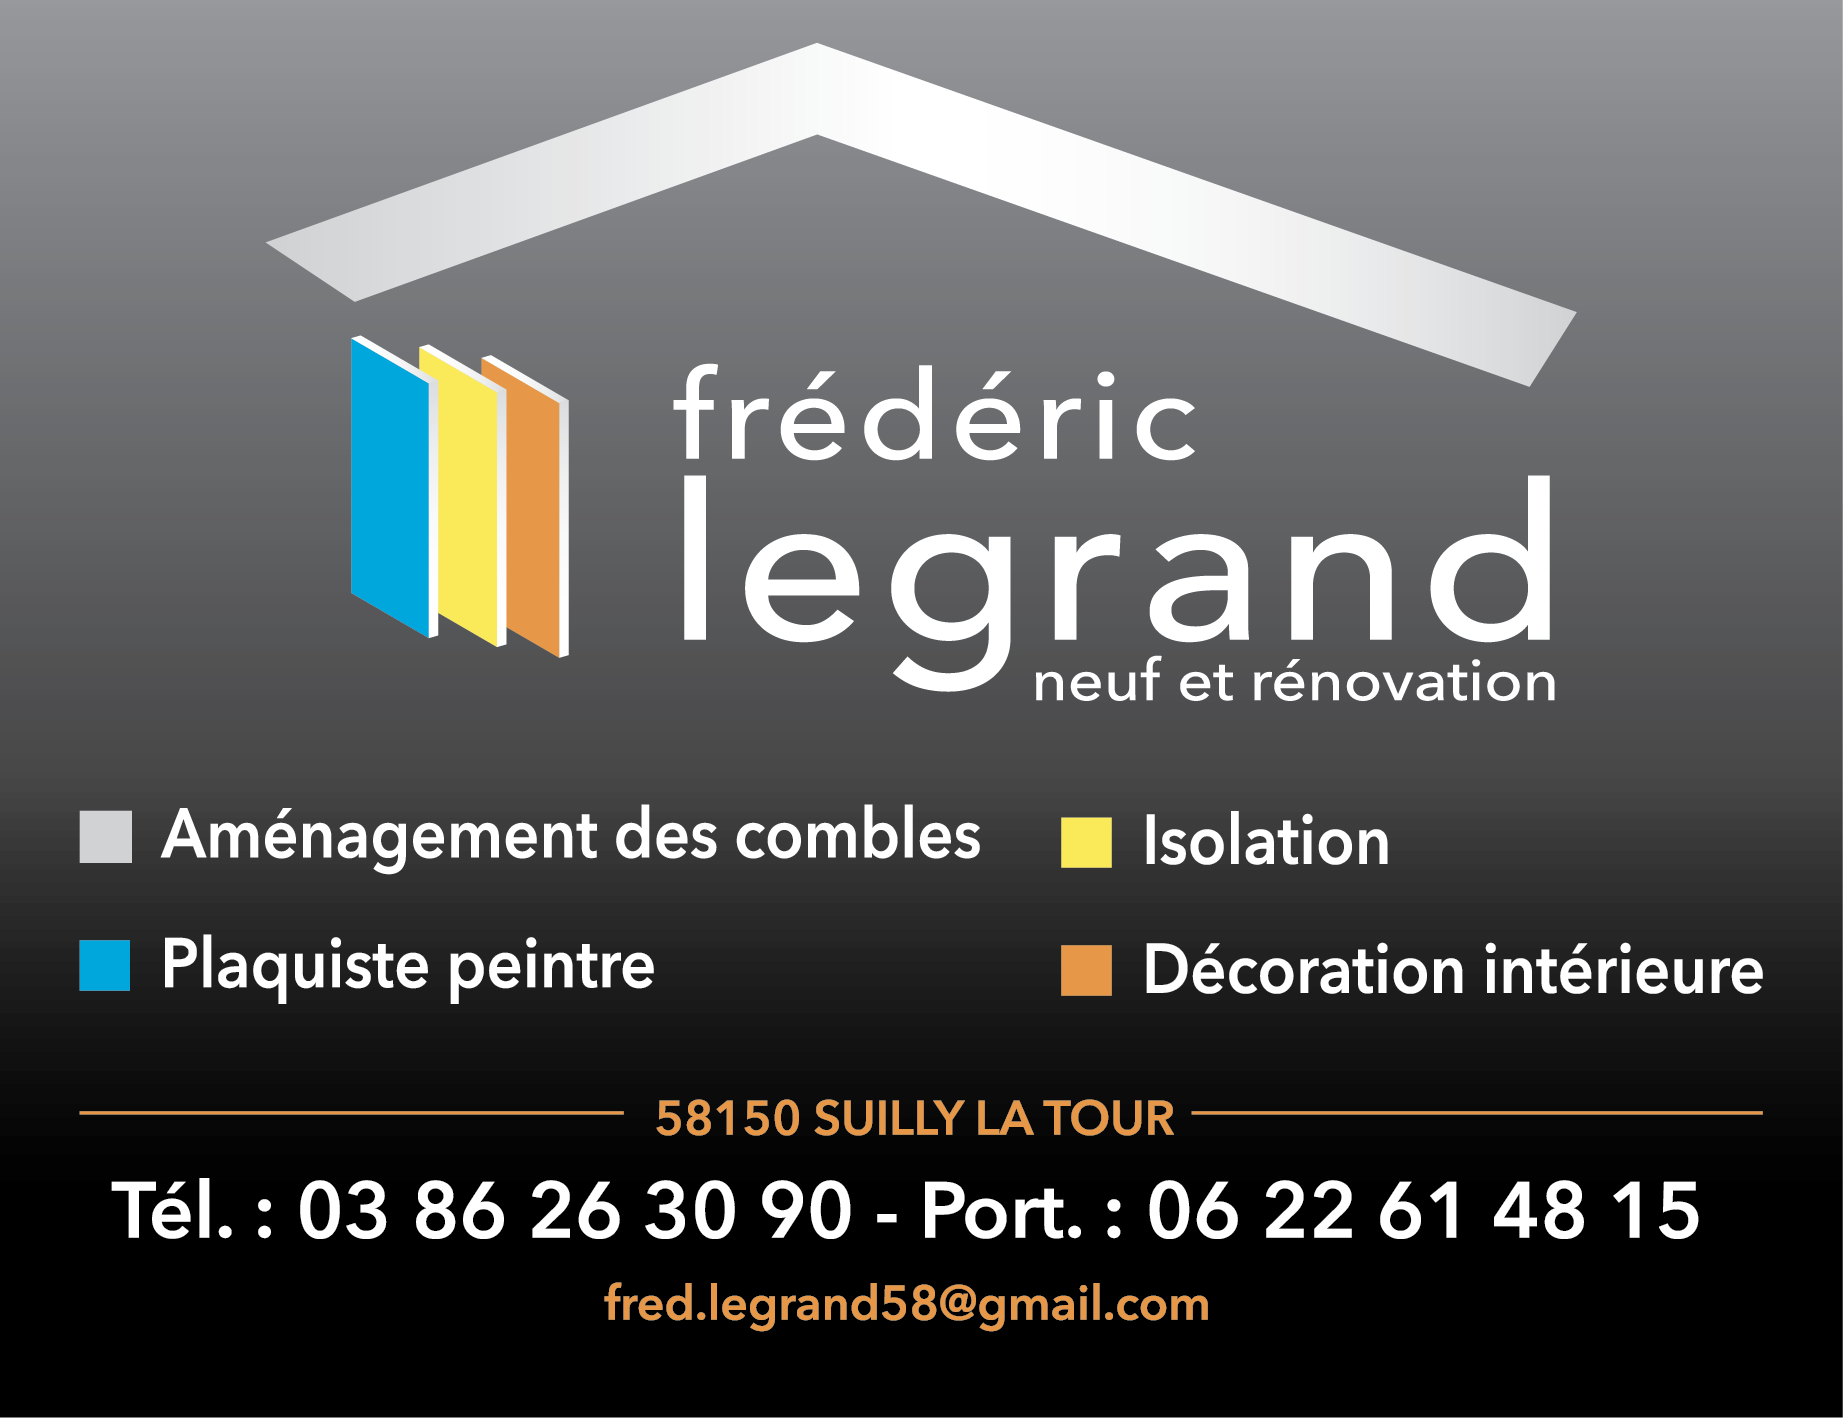 https://www.bcn-nevers.fr/project/frederic-legrand/